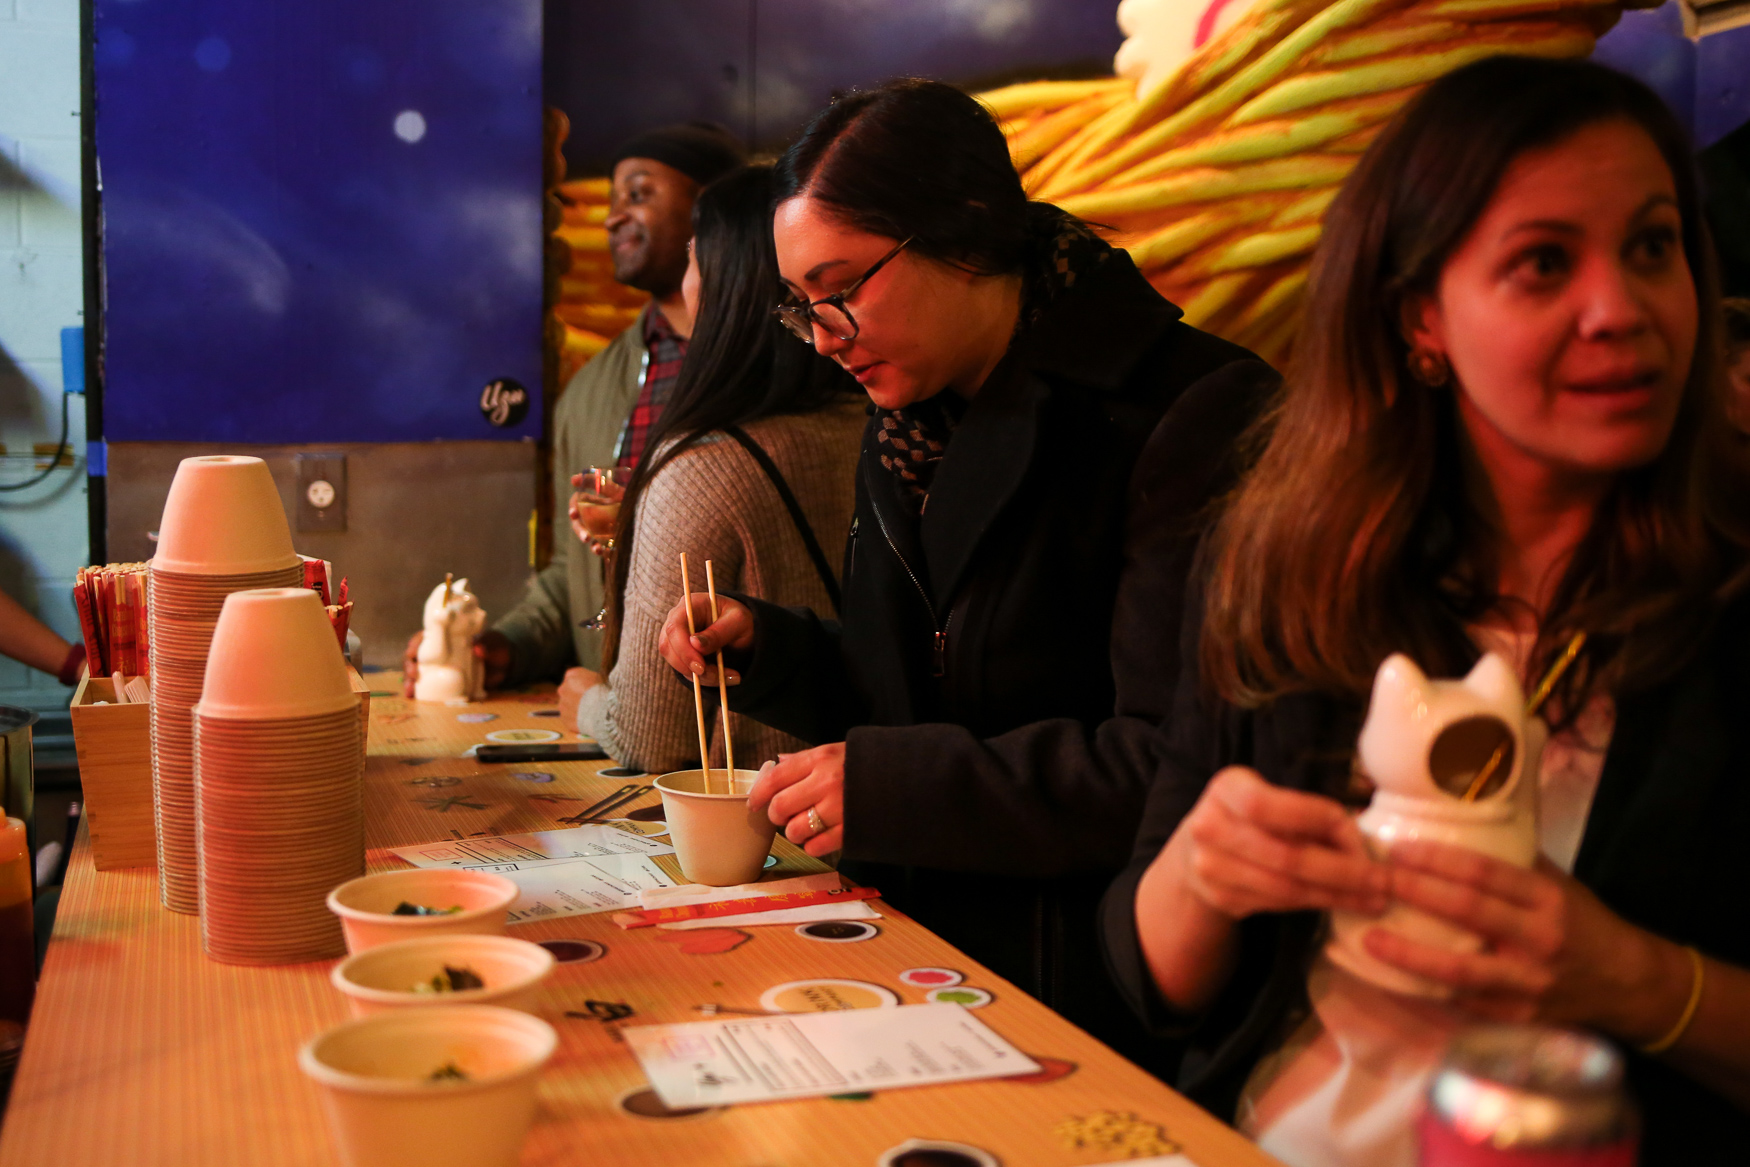 The Cherry Blossom Pop-up Bar is re-opening to the public on February 28th. Just like years past, the decor is focused on thousands of artificial blooms that line the walls and ceilings. However, the pop-up bar will also feature a ramen room with larger-than-life noodle decor as well as pork and vegan ramen options from Uzu Ramen. The pop-up bar at 1834 7th Street NW will stay open until April 21. (Amanda Andrade-Rhoades/DC Refined)